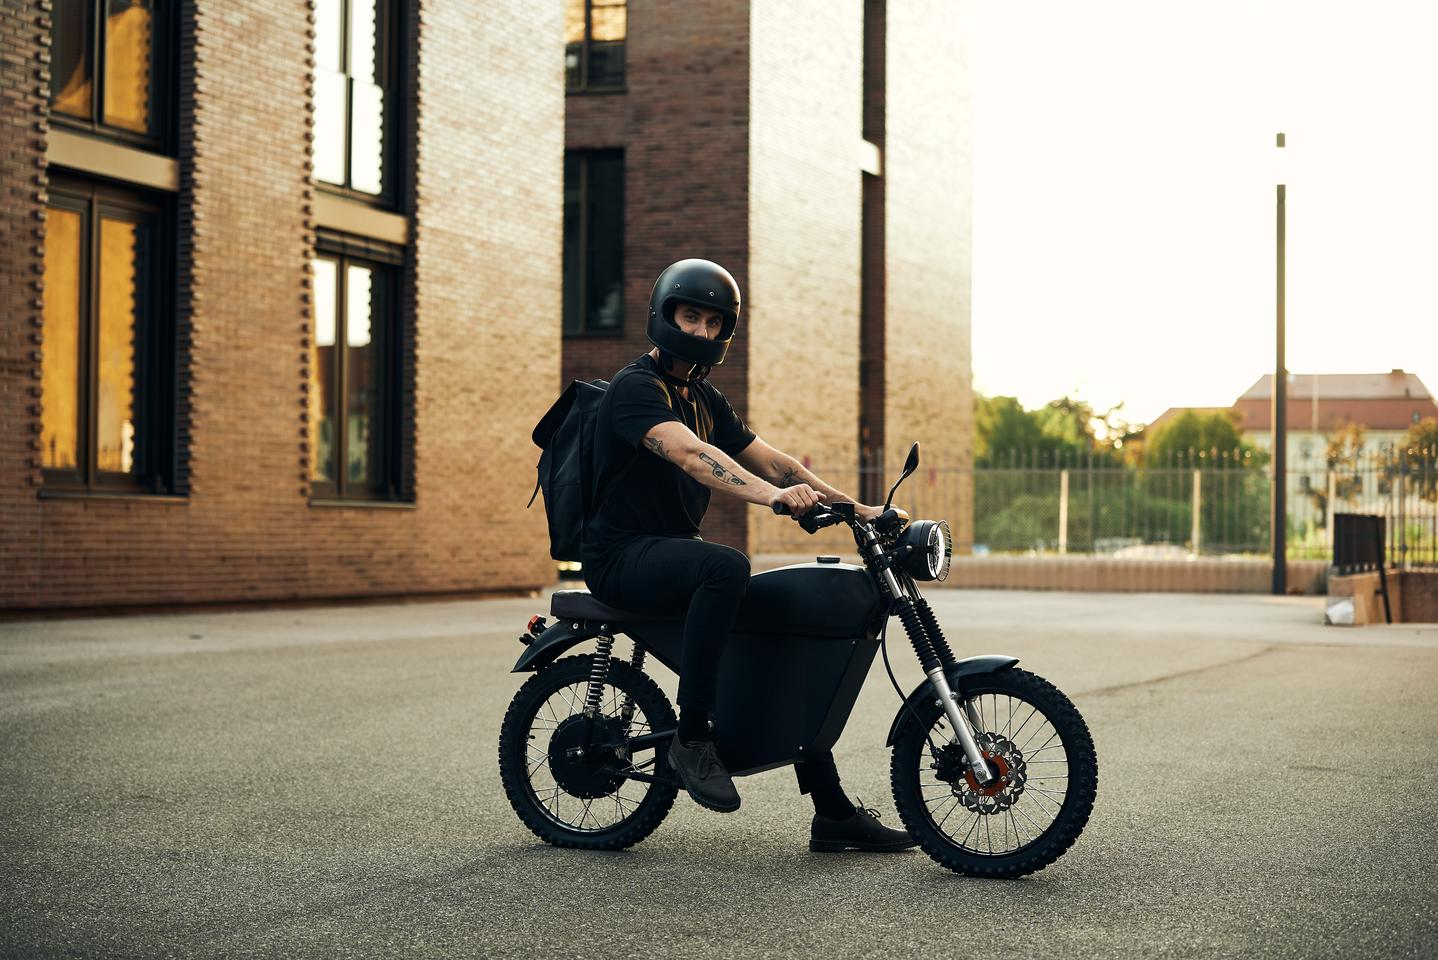 Drawing a little inspiration from the vintage 70s Ducati scramblers and a little from the electric two-wheelers of today, German mobility startup BlackTea has taken to Indiegogo with an electrified moped built for all terrain